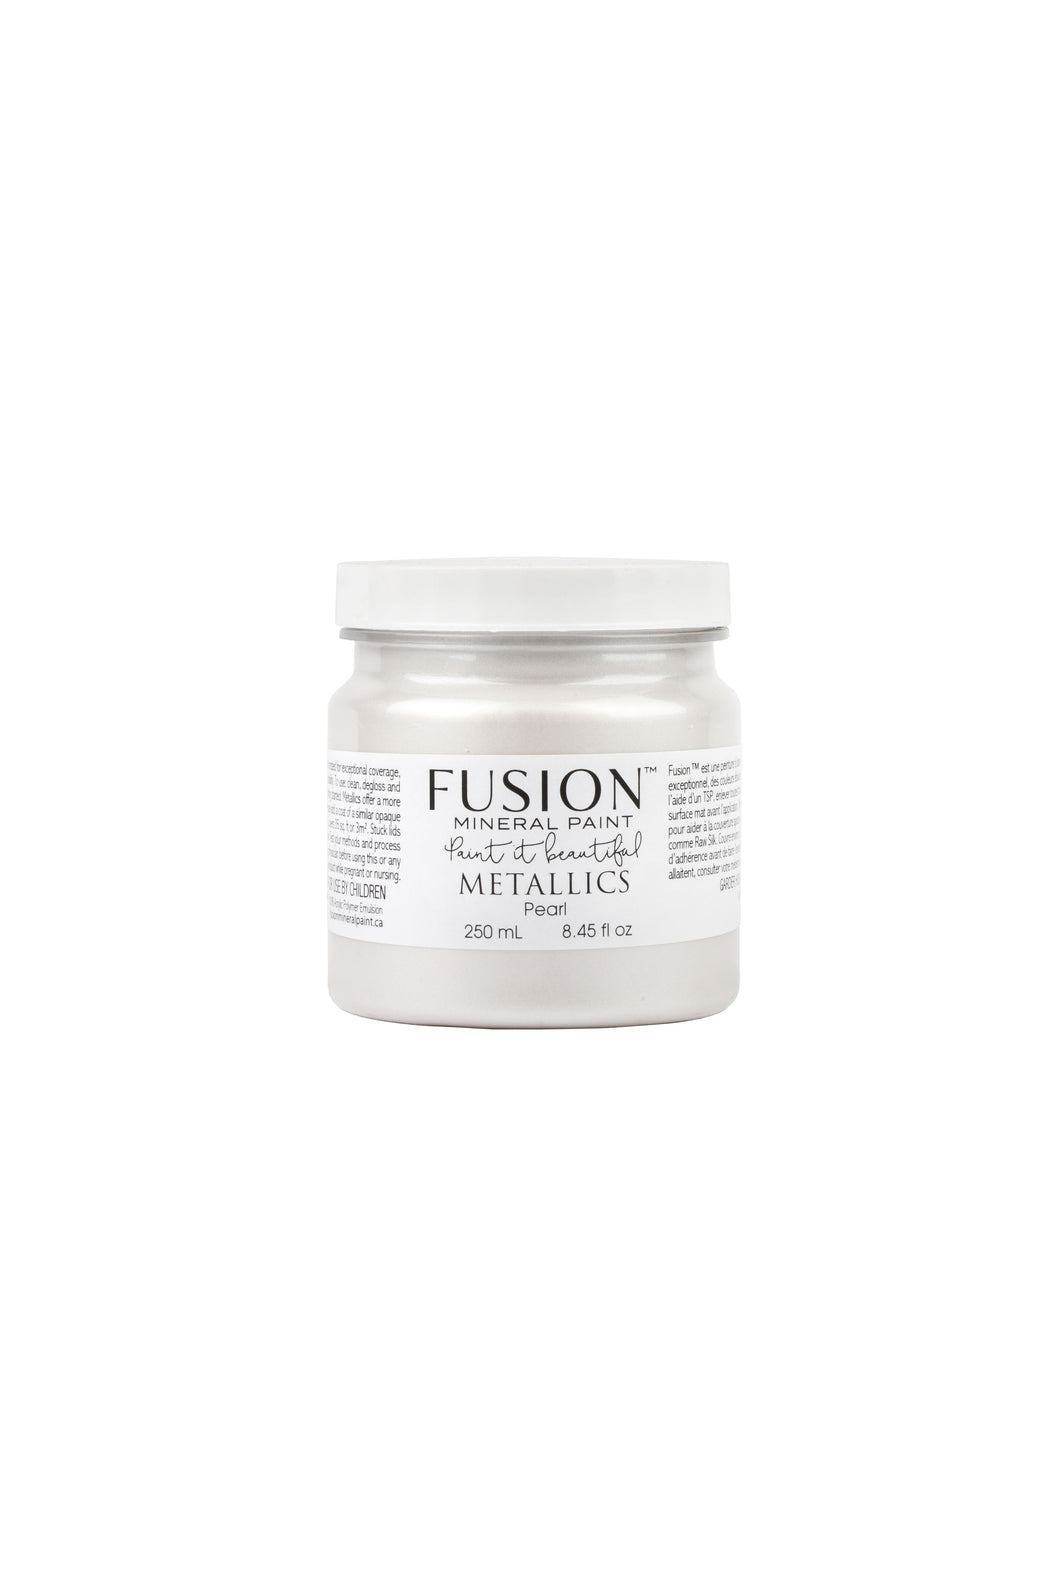 fusion_mineral_paint-metallic-pearl-250ml-colour_me_kt.jpg